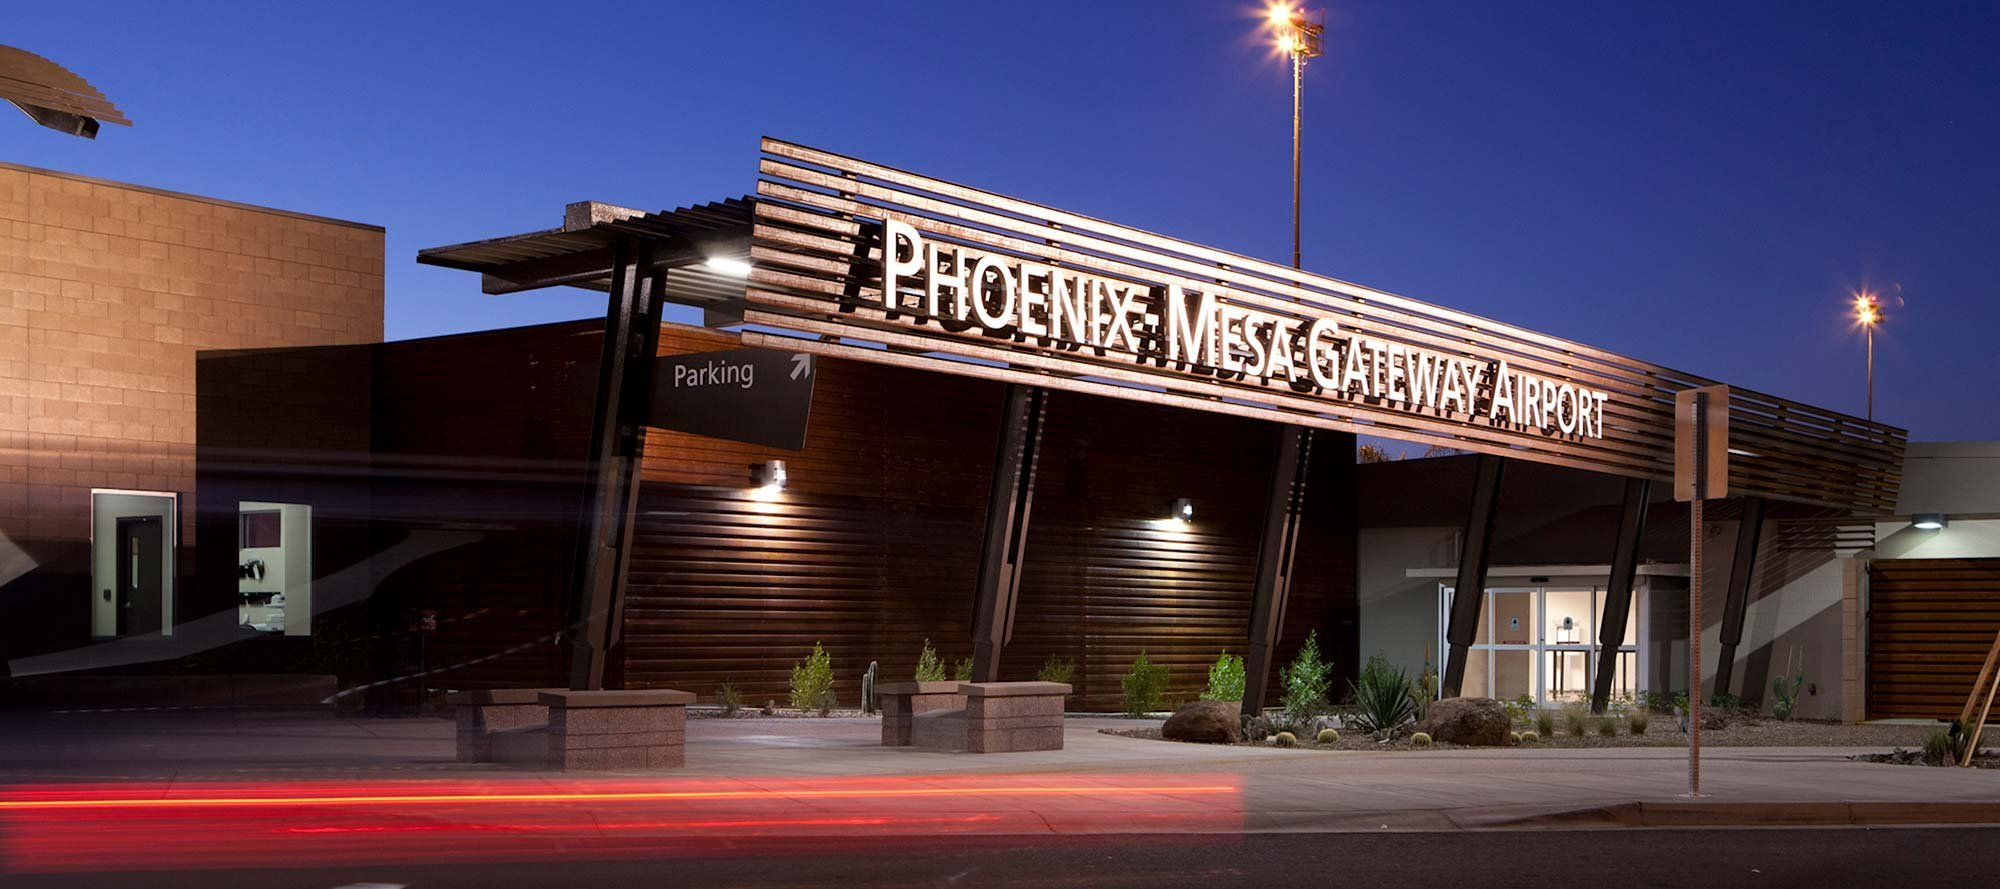 PhoenixMesa Gateway Airport Continues to Be Major